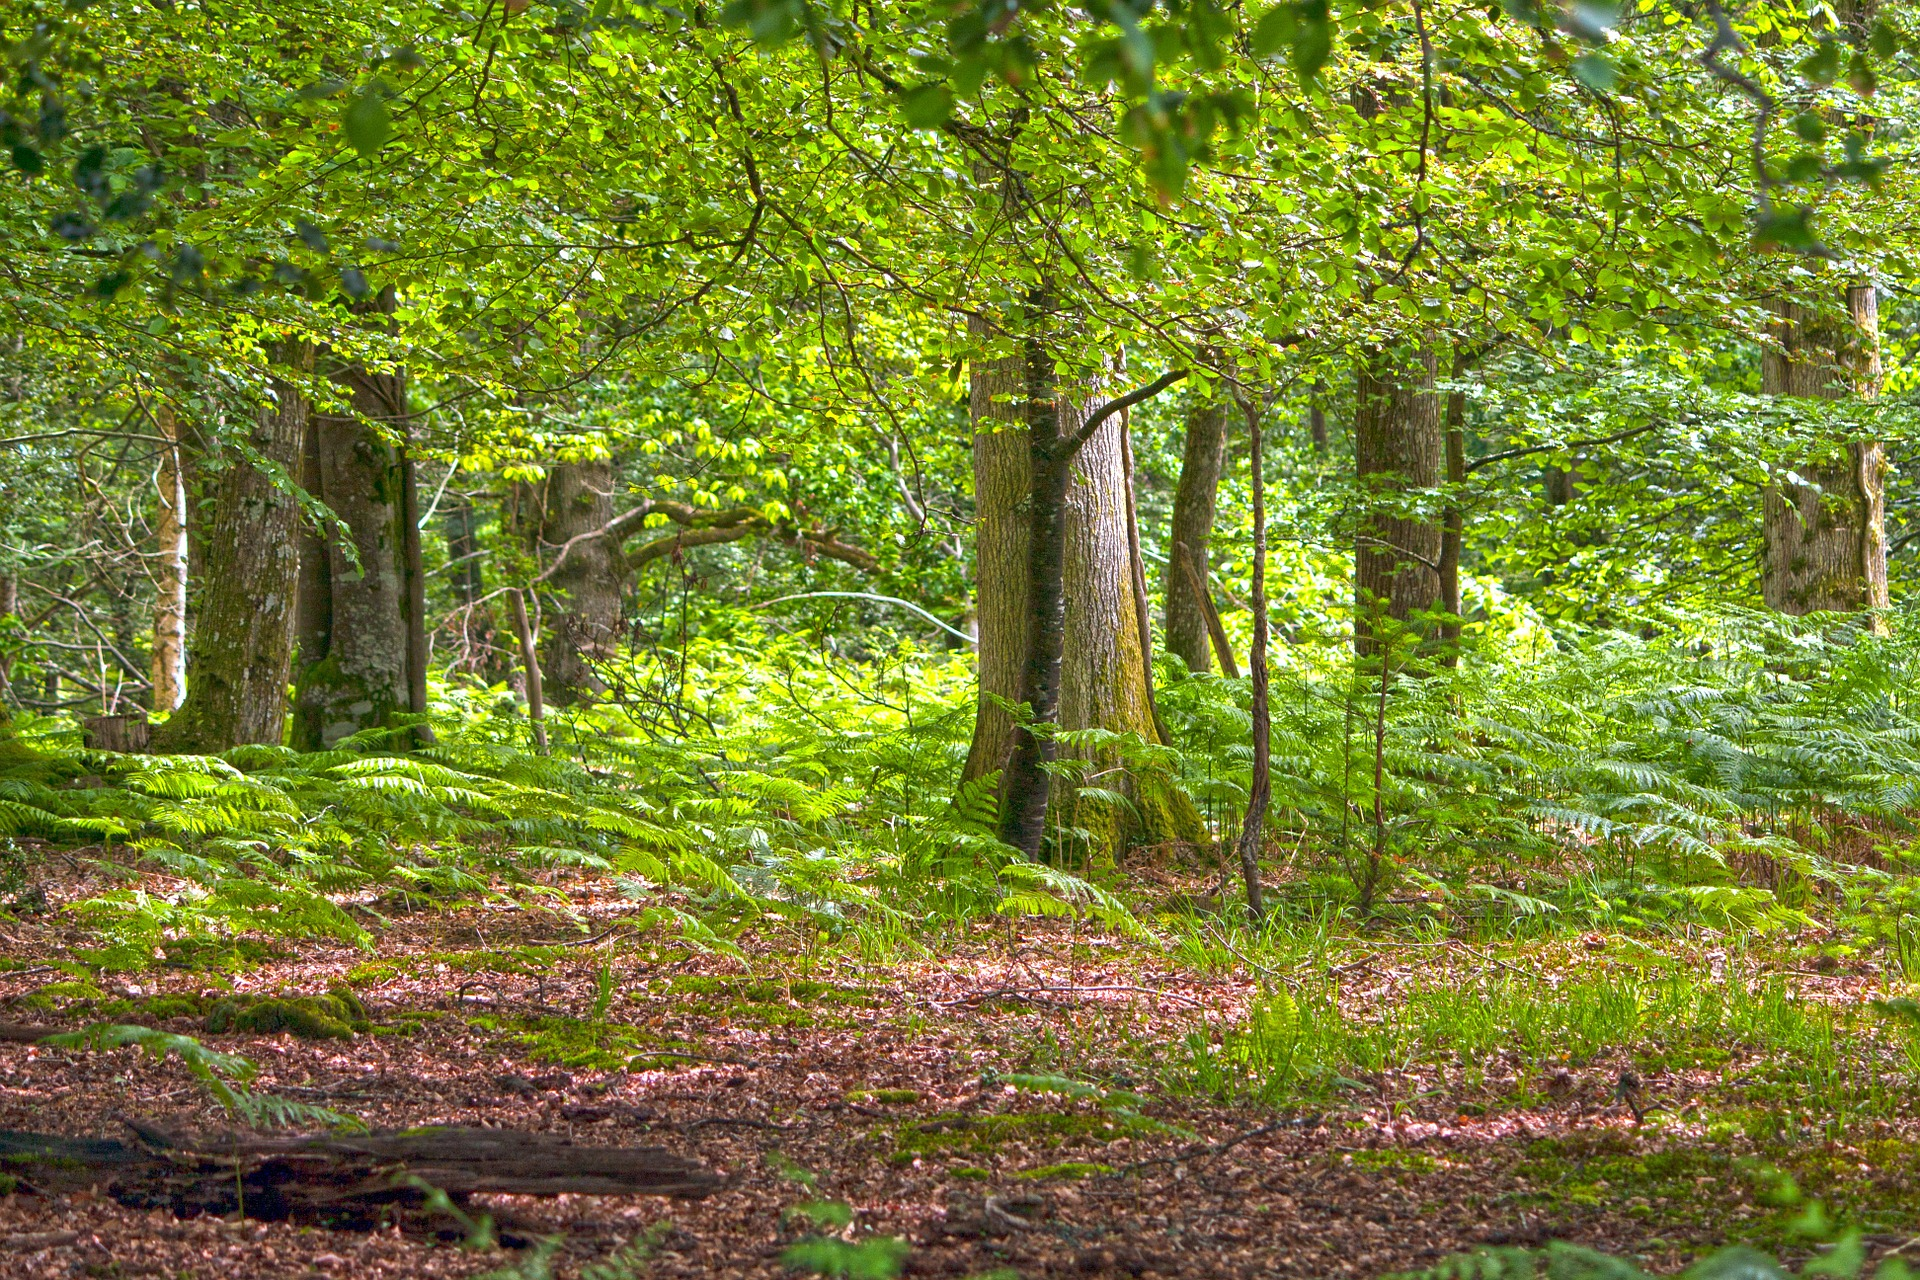 forest-907742_1920